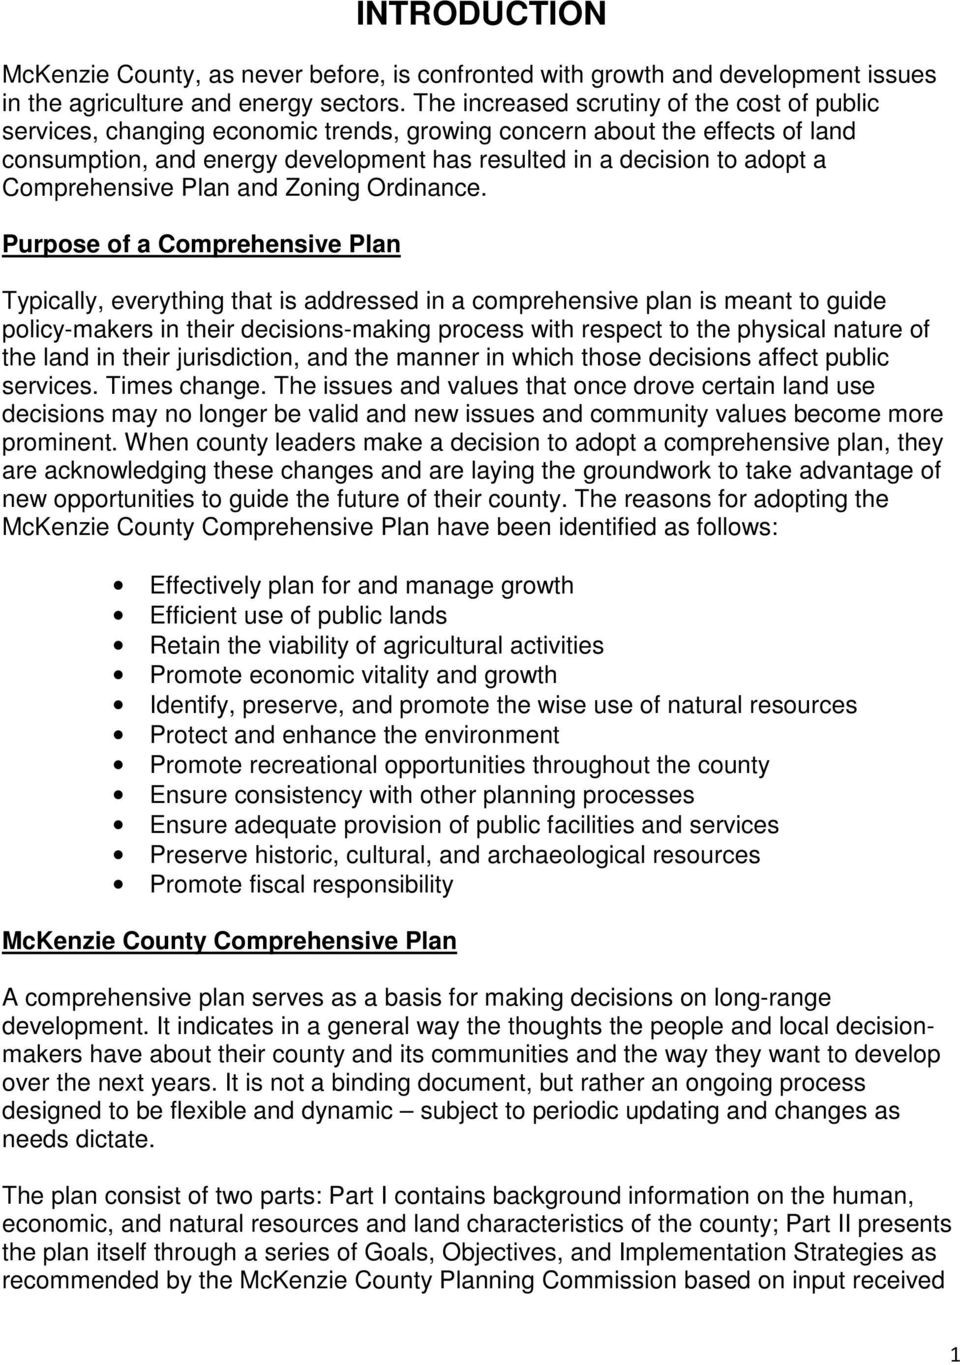 Comprehensive Plan and Zoning Ordinance.